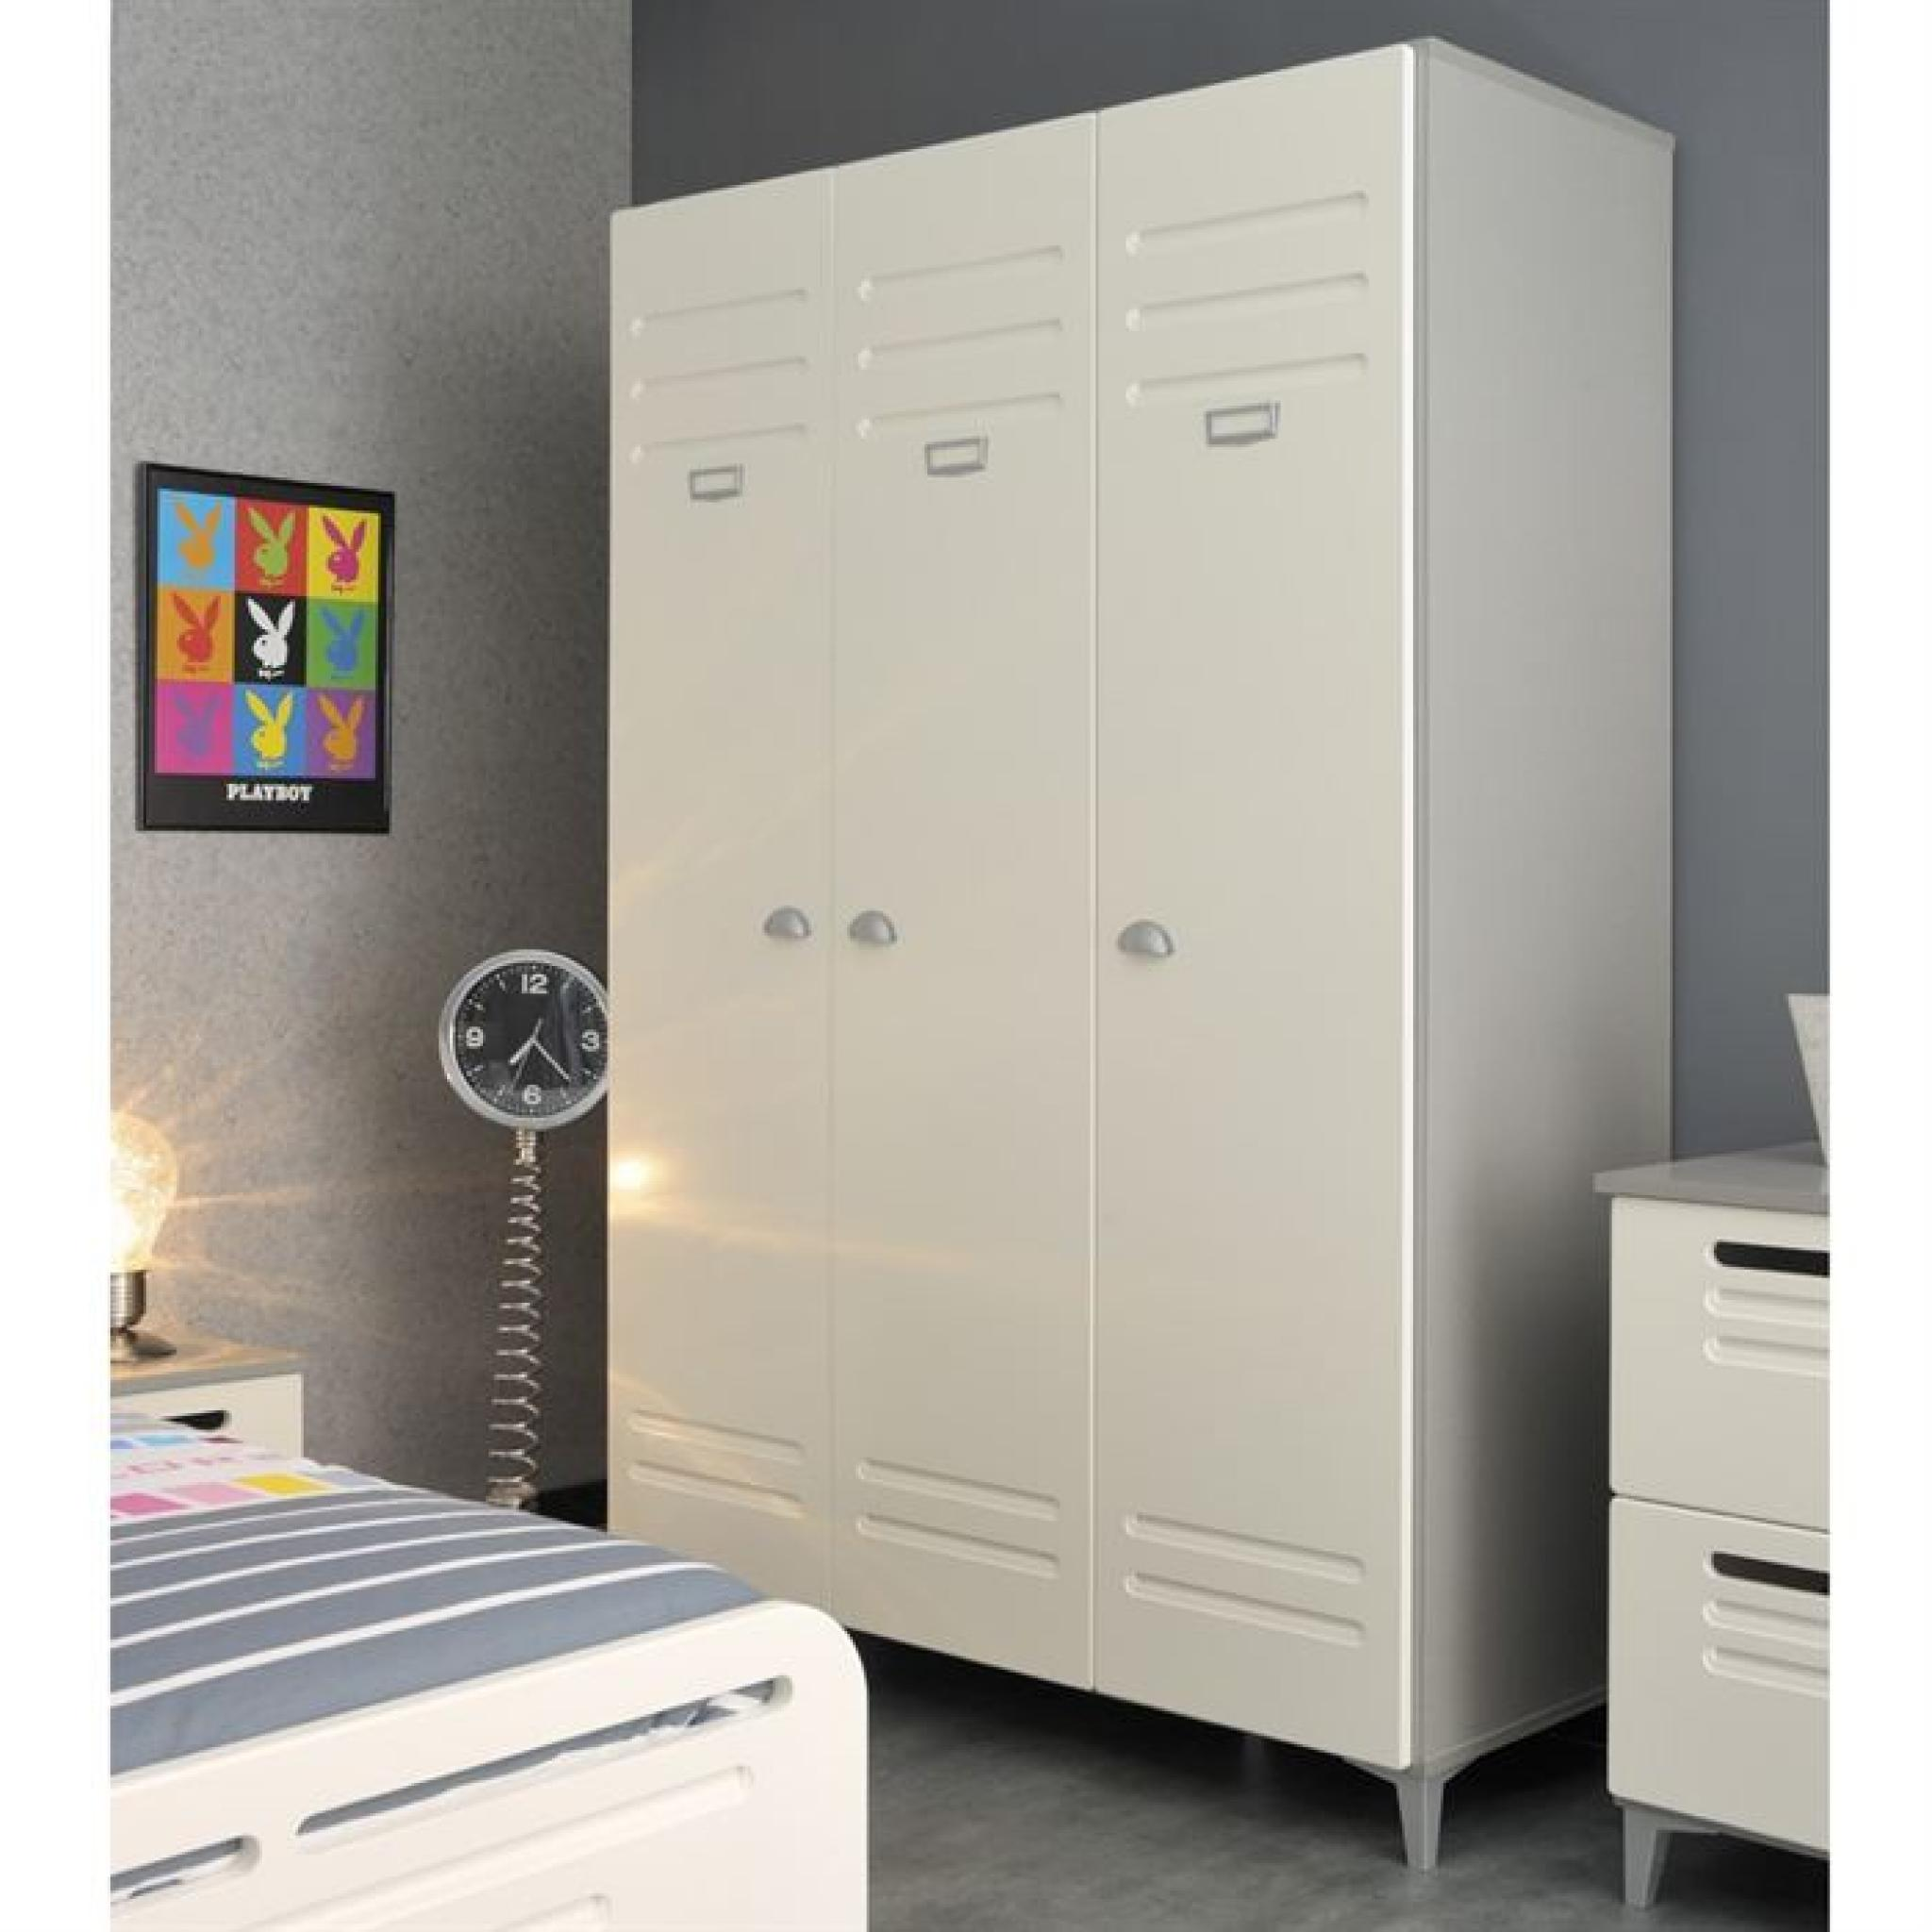 metal lit 3 tiroirs 1 chevet et 1 armoire enfant achat vente chambre complete pas cher. Black Bedroom Furniture Sets. Home Design Ideas